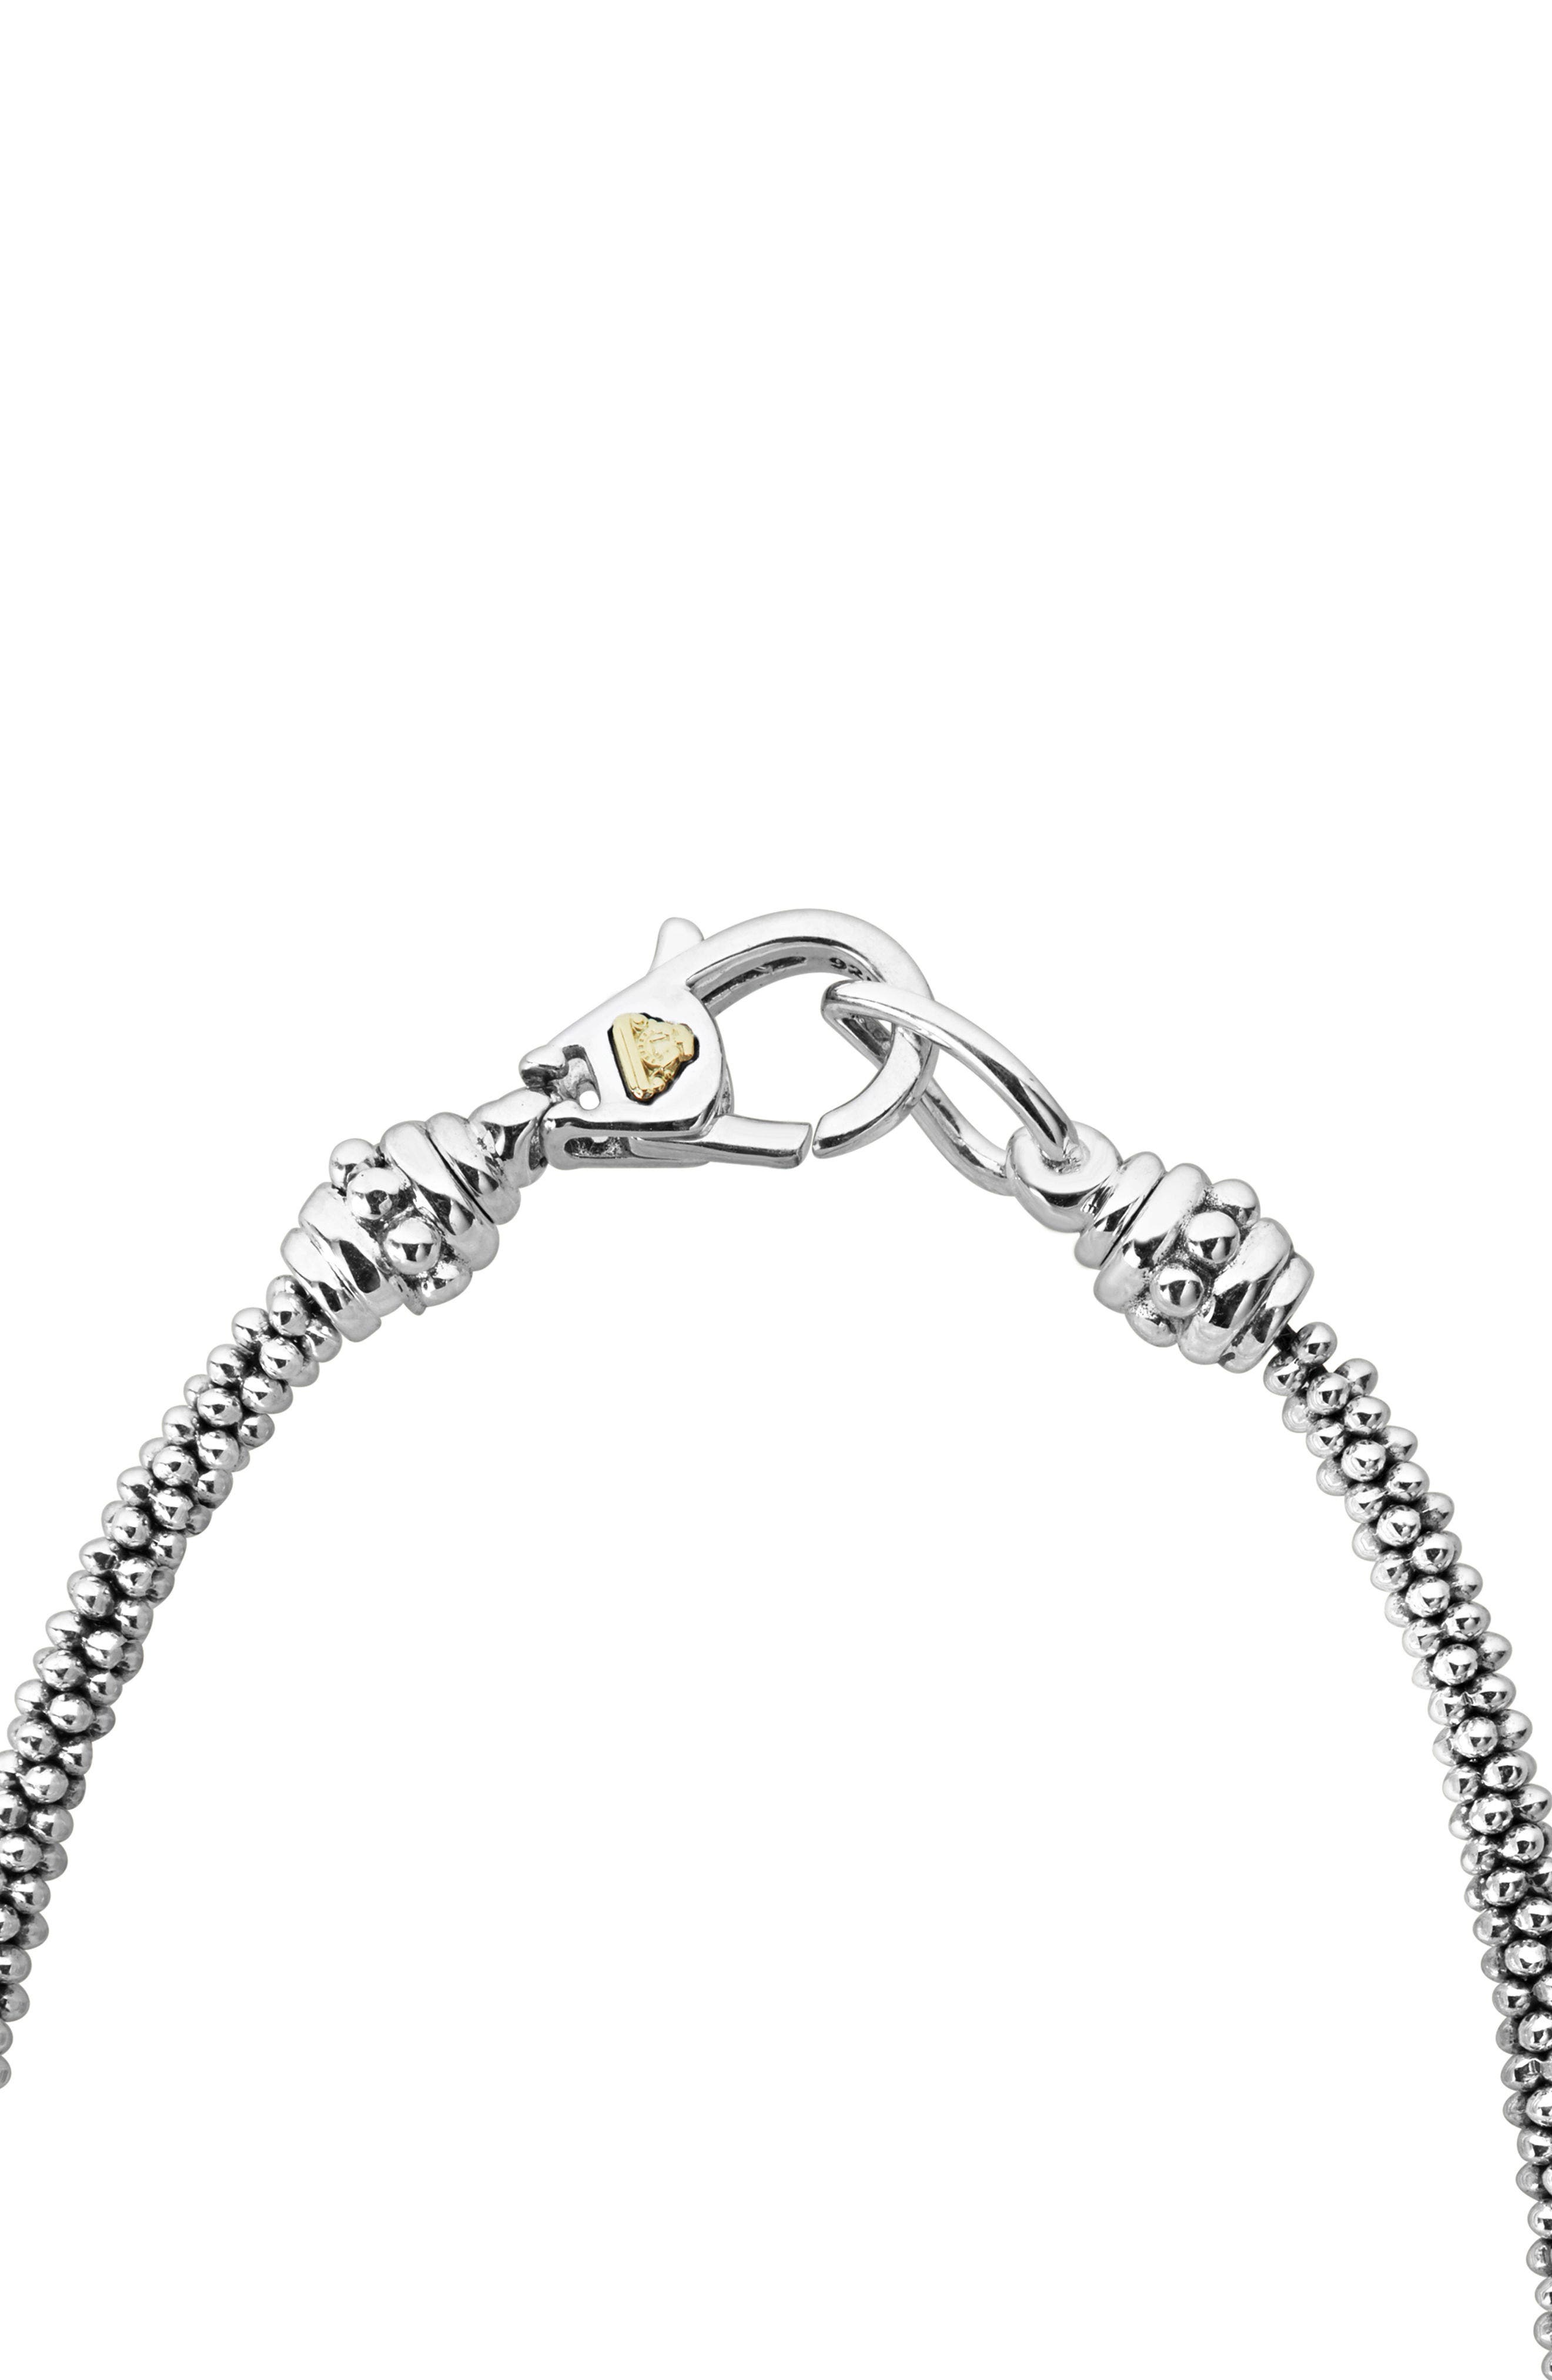 Lux Diamond Rope Necklace,                             Alternate thumbnail 4, color,                             Silver/ Diamond